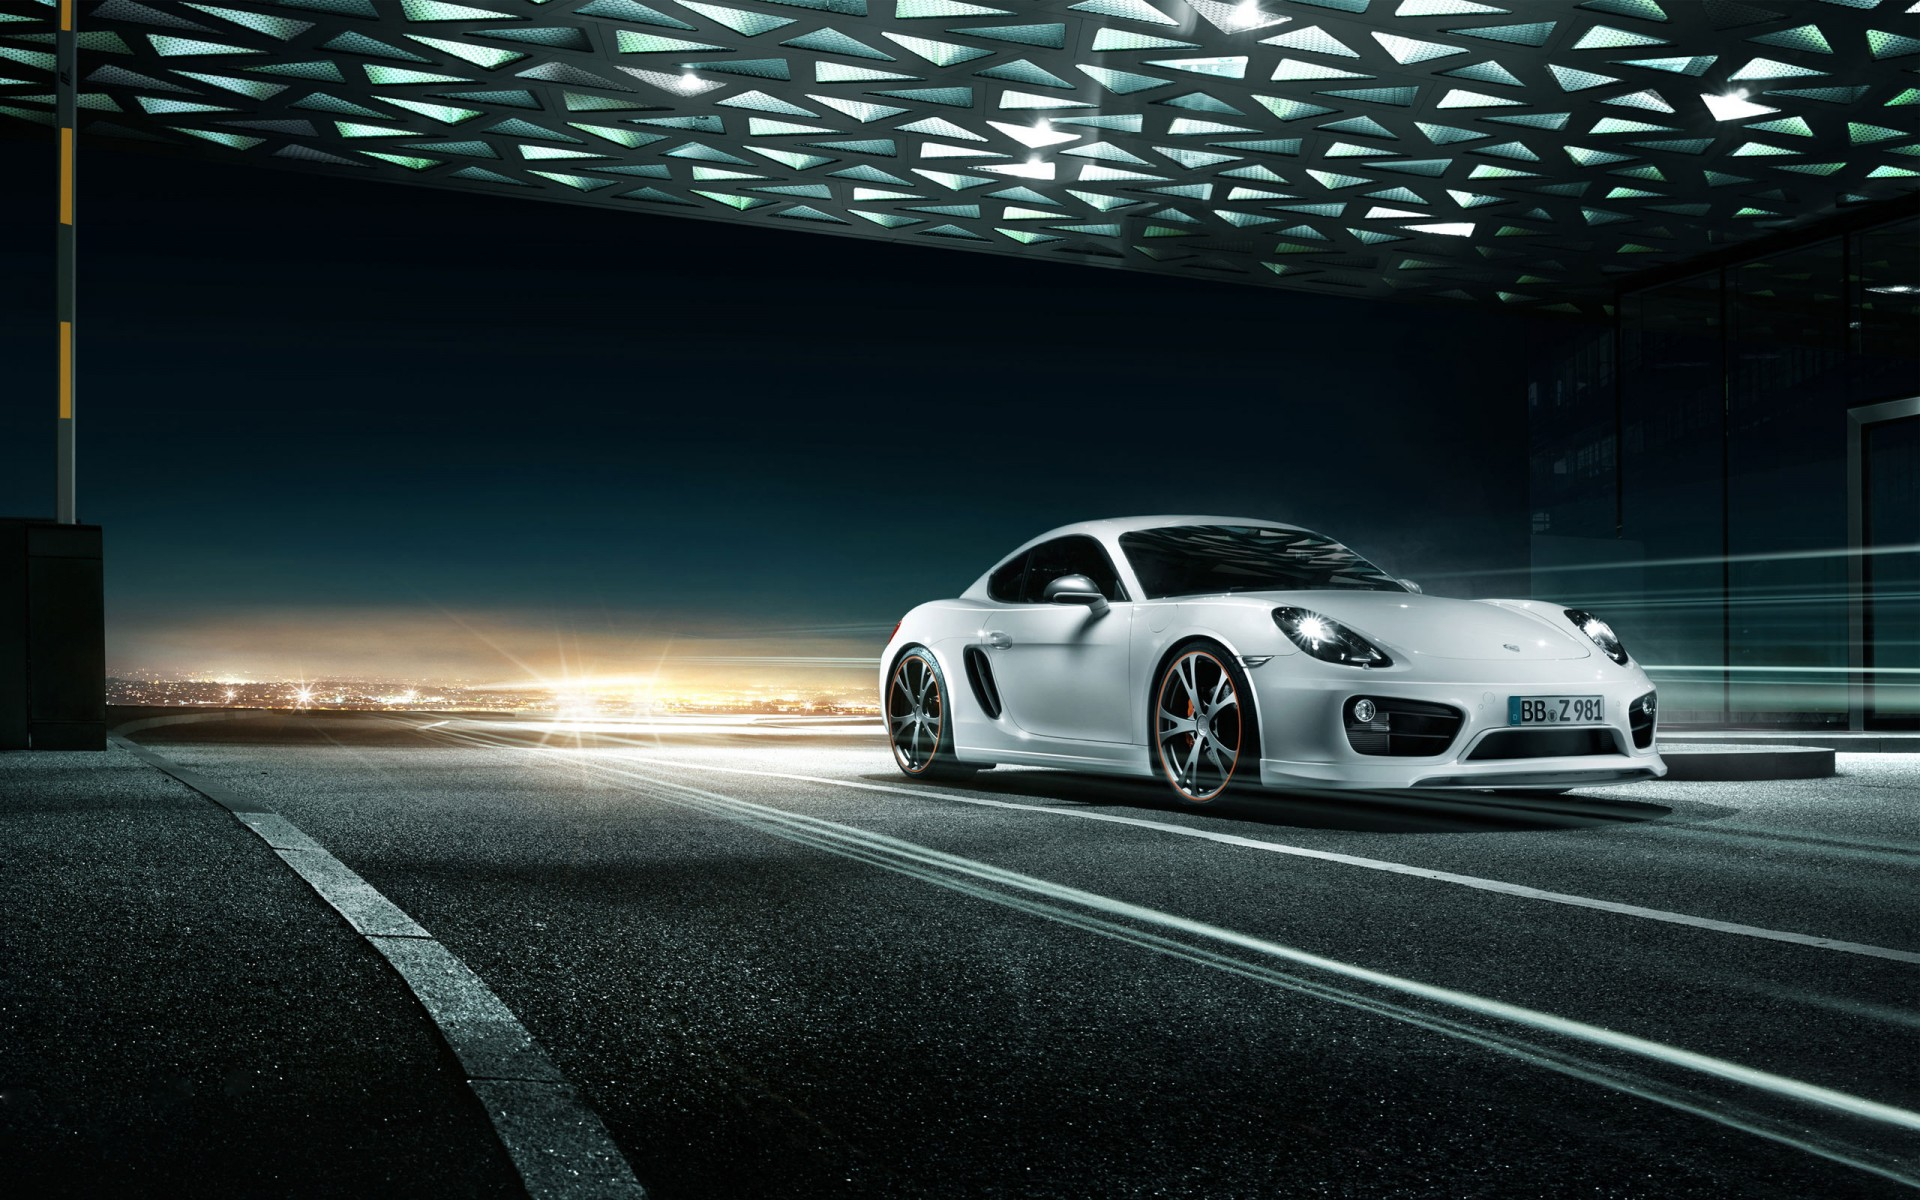 2013 Porsche Cayman by Techart Wallpaper | HD Car ...